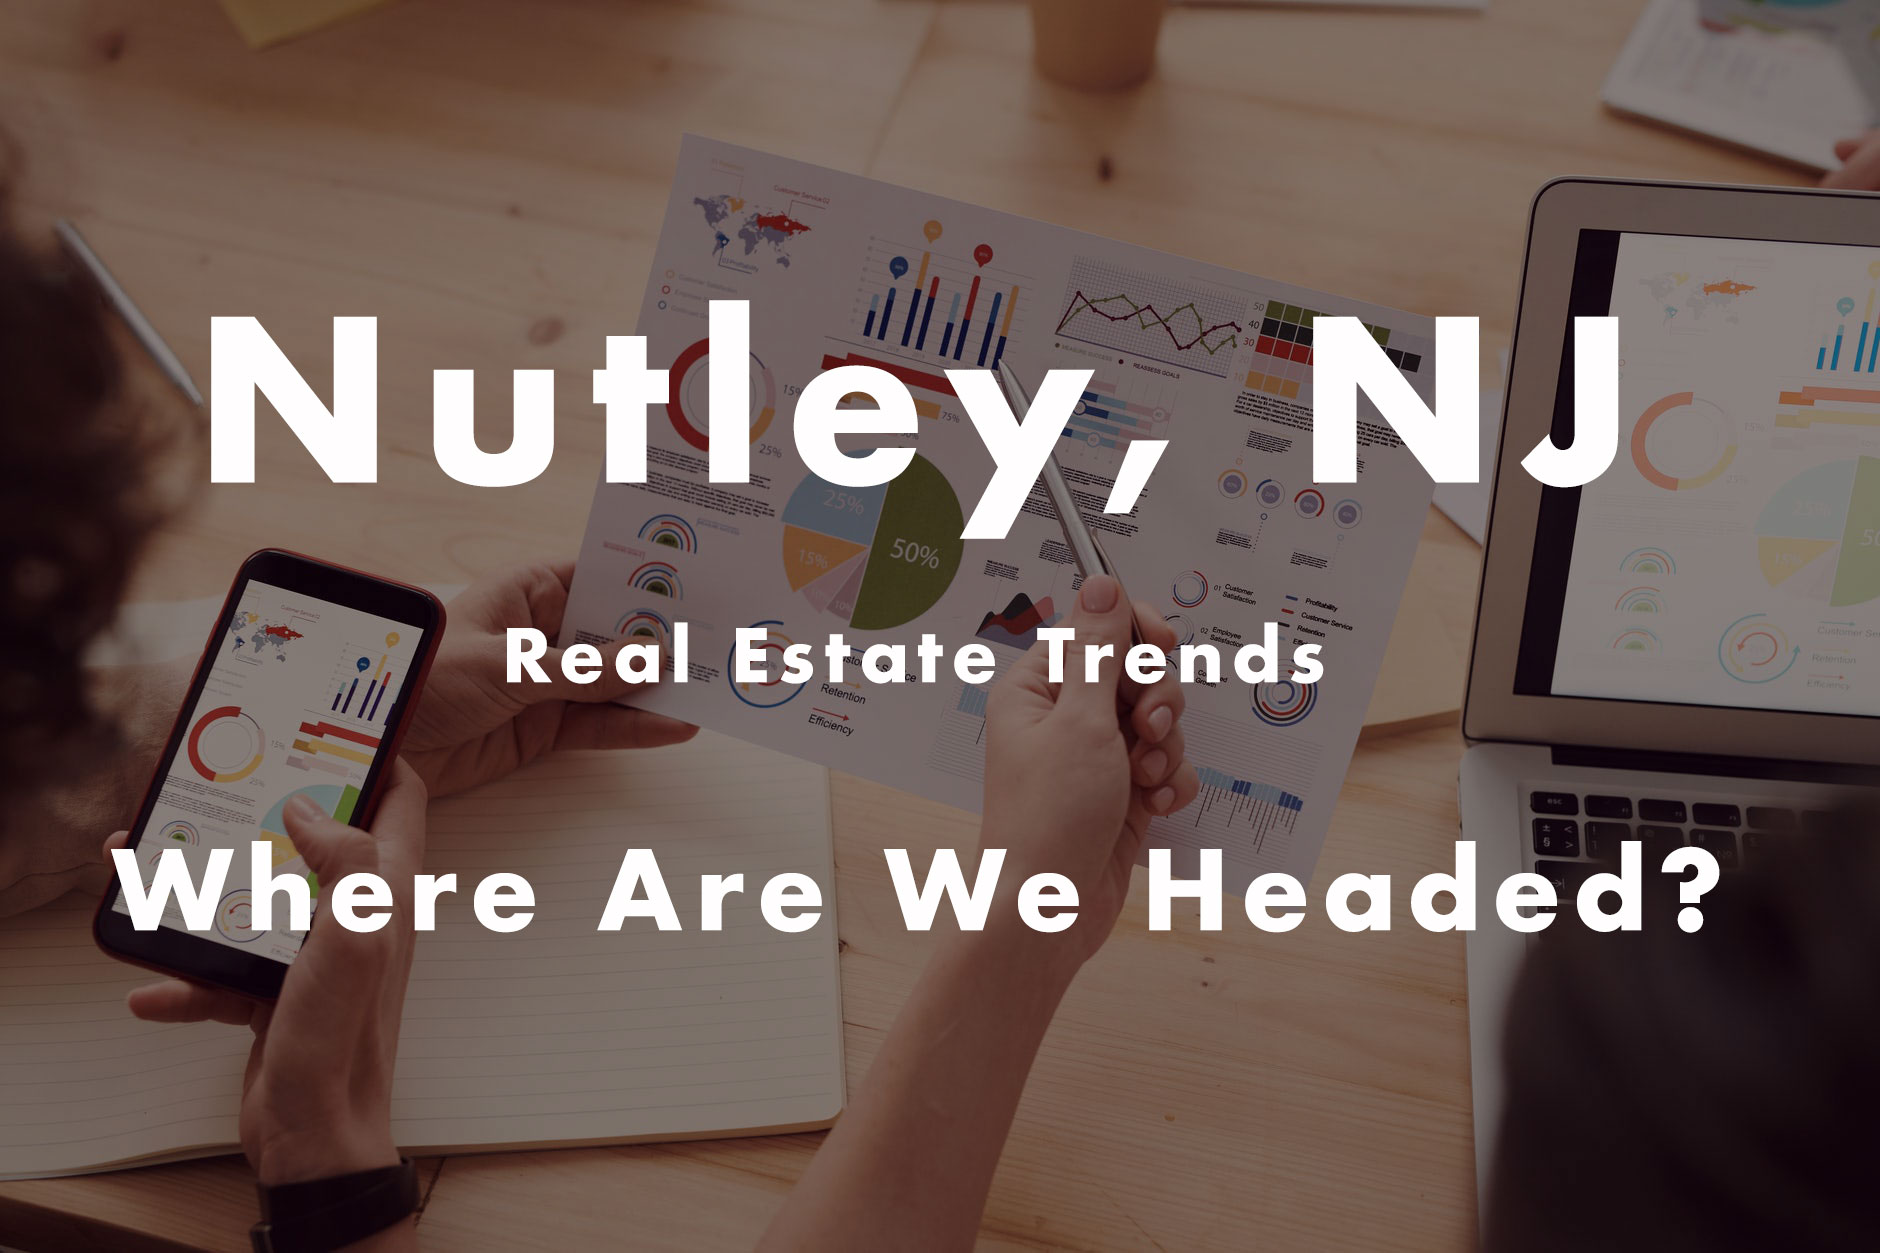 Nuley Real Estate Trends